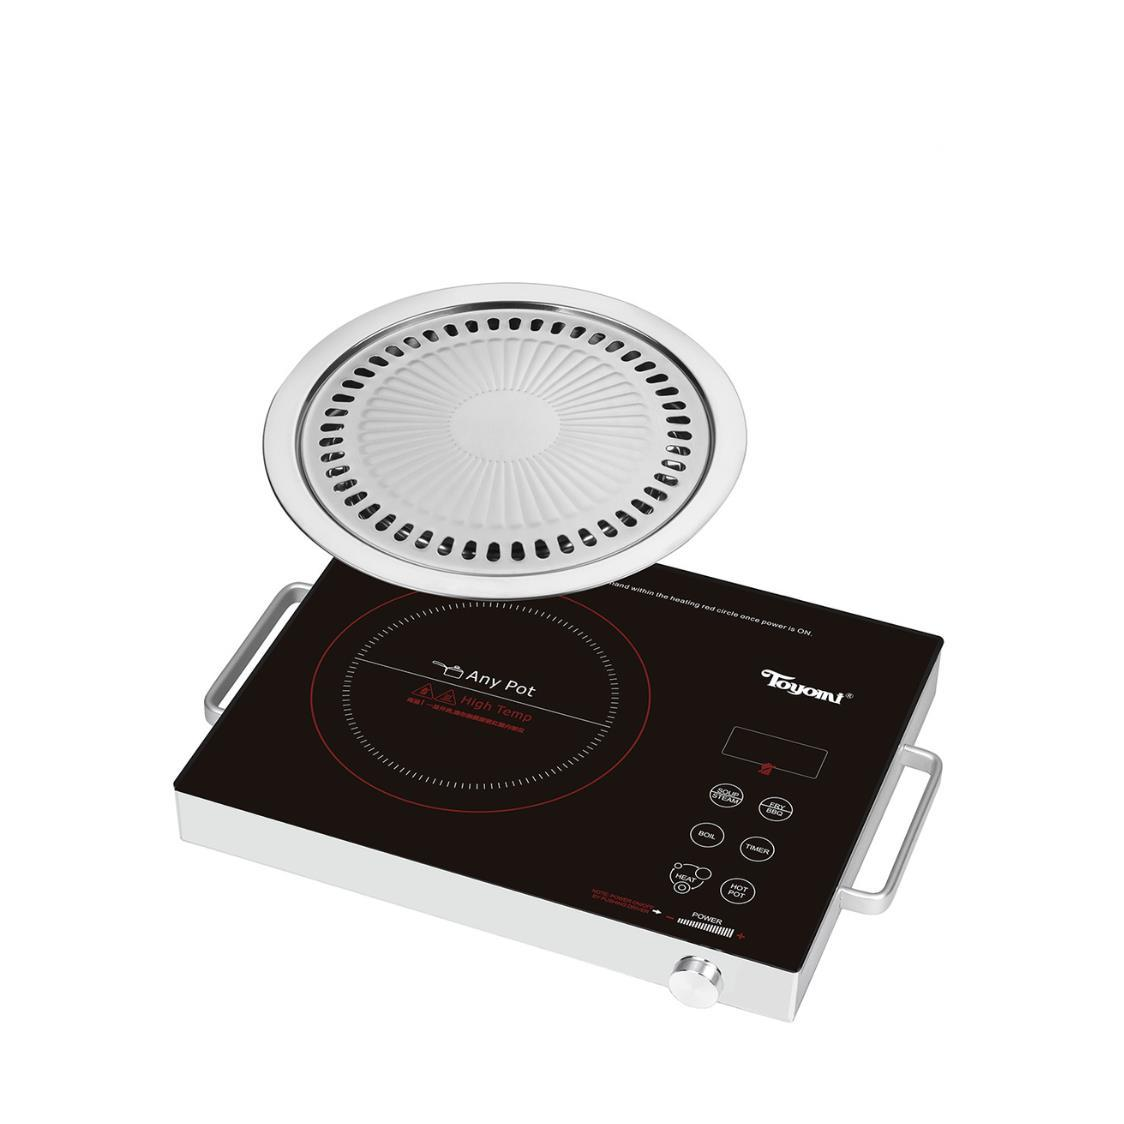 Toyomi Infra-red Cooker IC9590